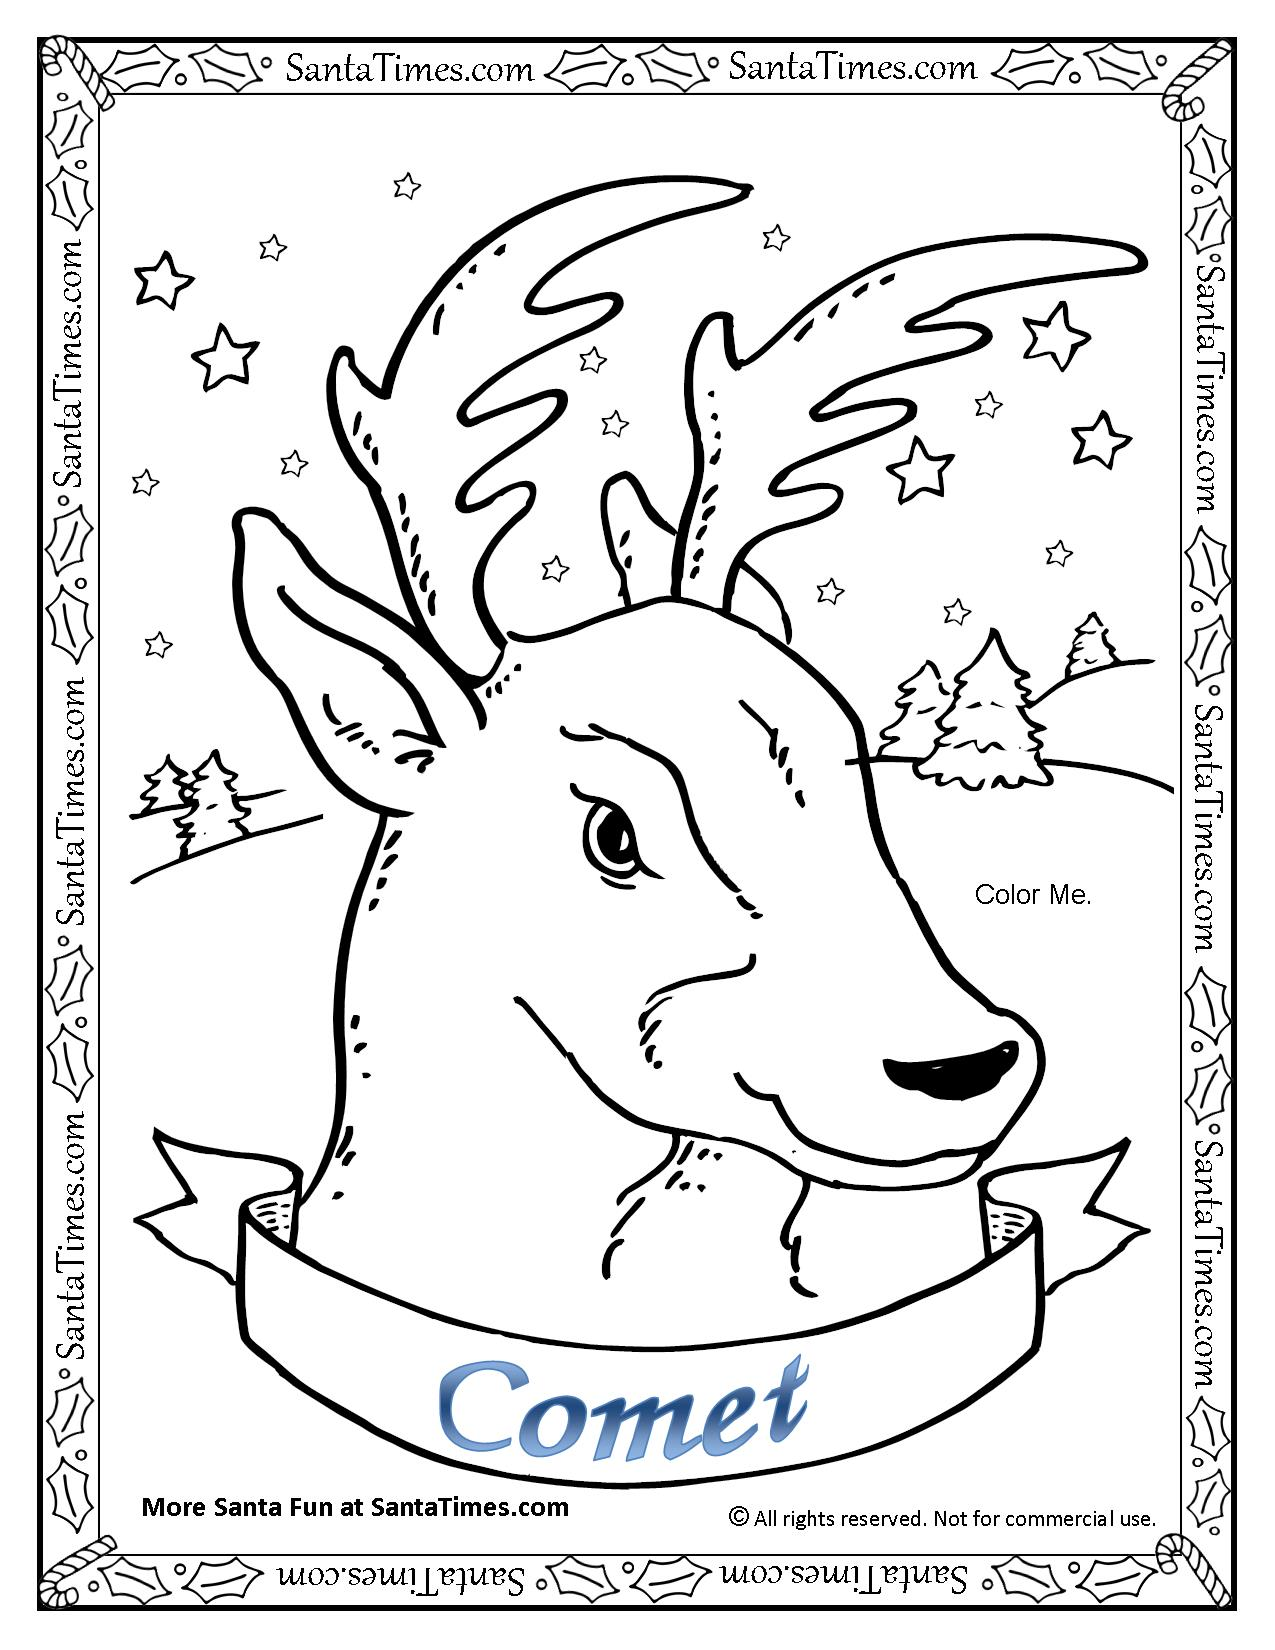 Asteroid coloring pages